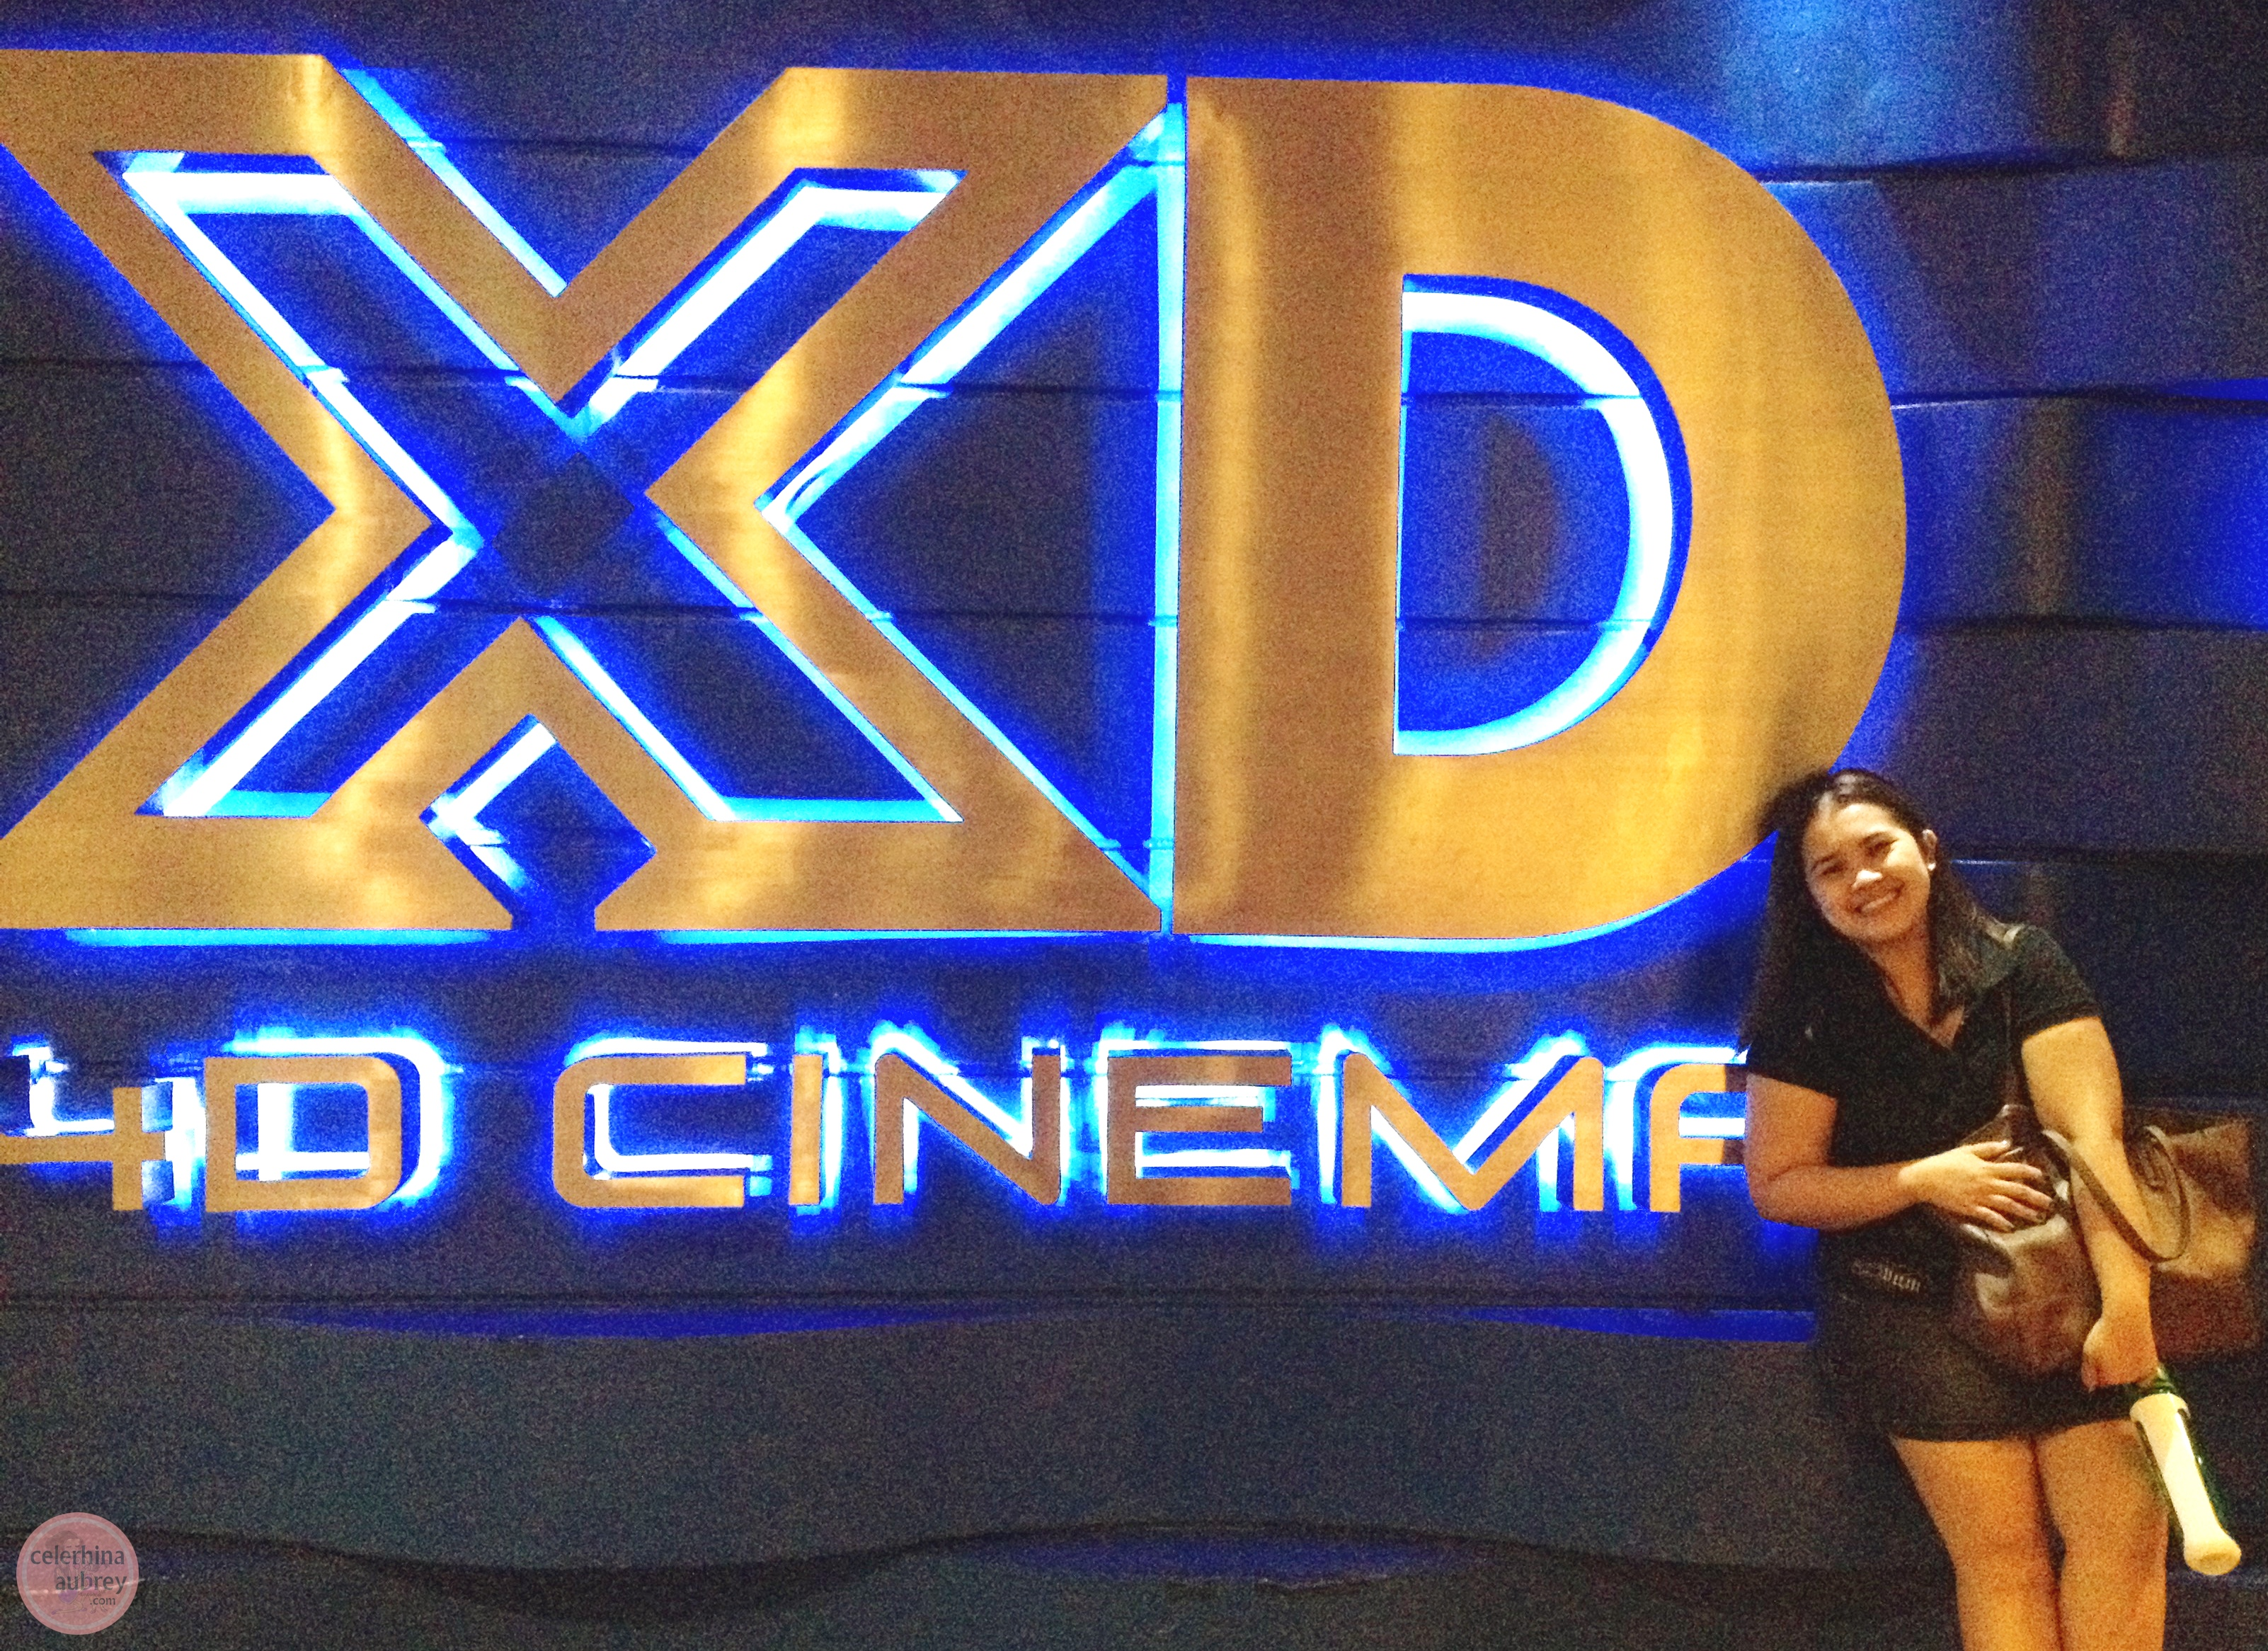 SM-Cinema-4D-XD